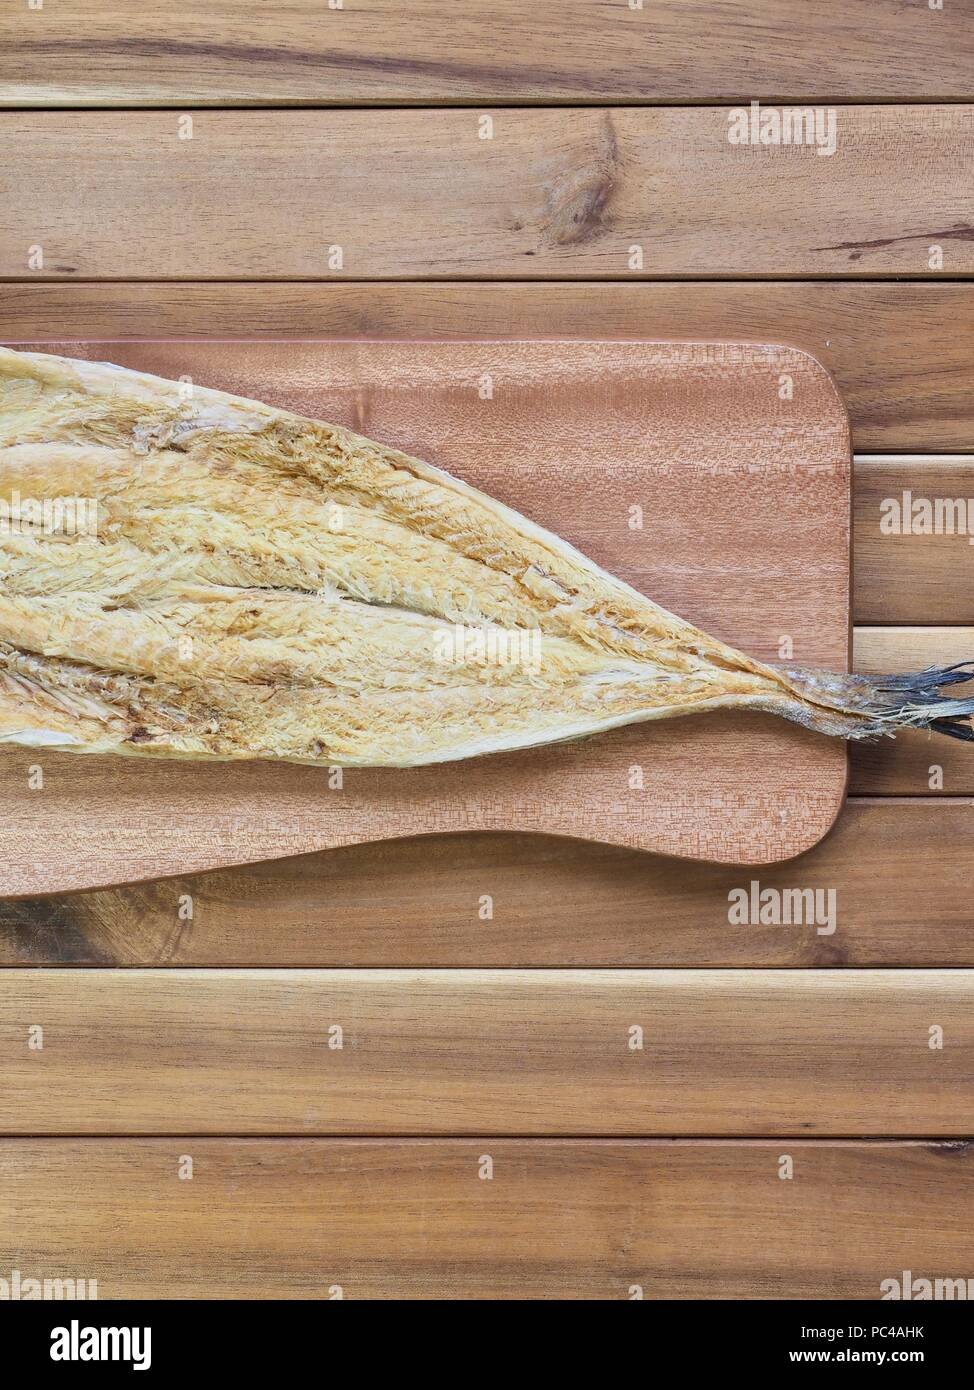 Korean food ingredients dried fish - Stock Image